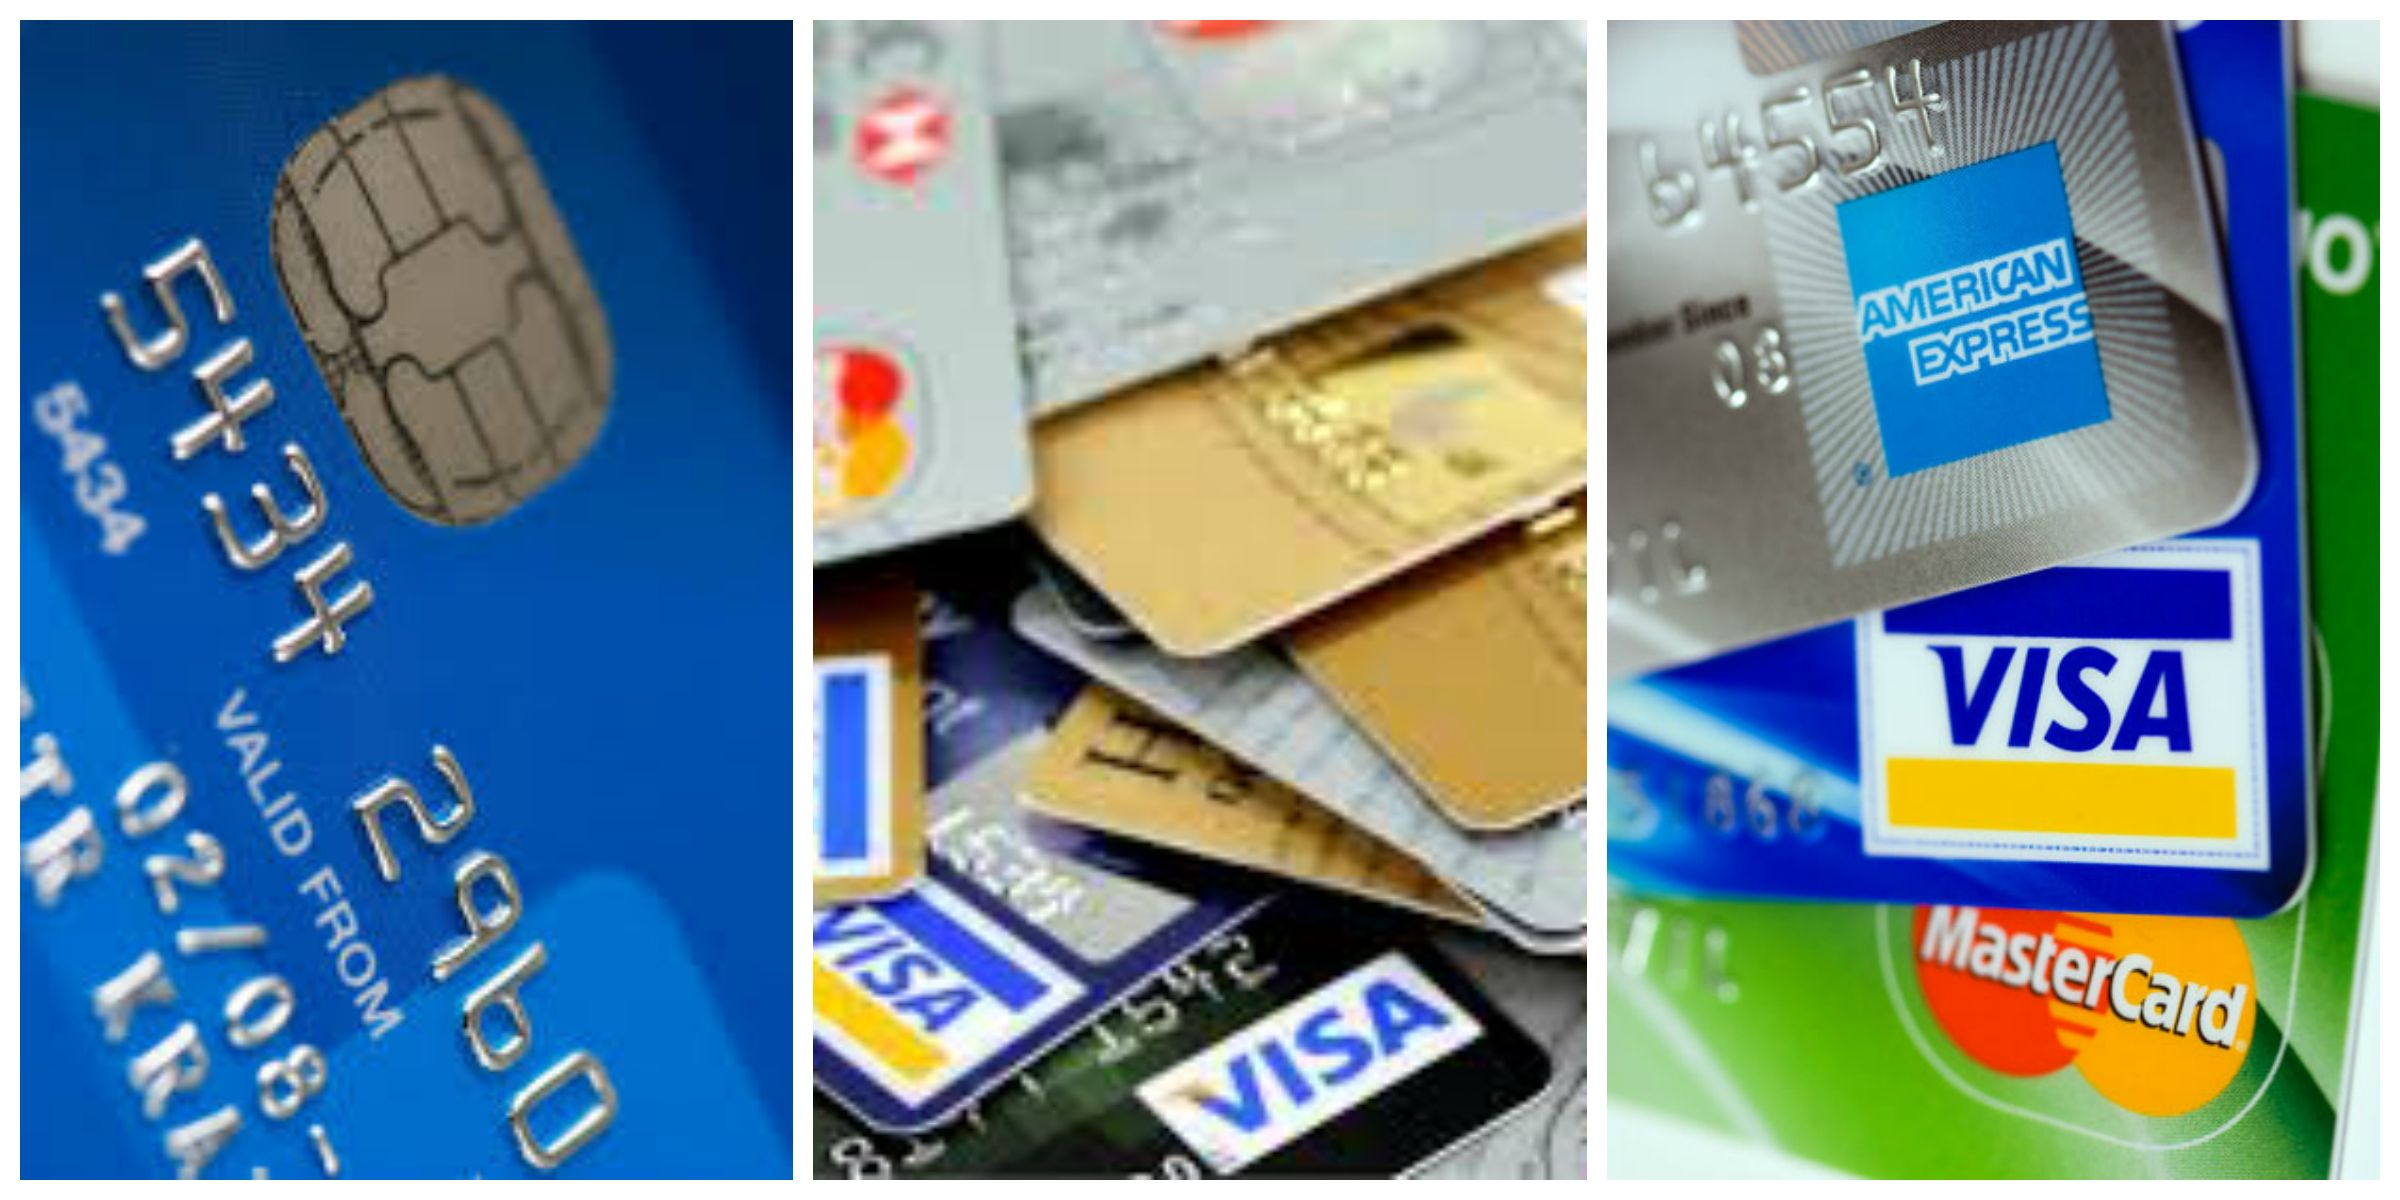 Reclaim Bad Credit Credit Cards Unsecured Catalogues Bad Credit Bad Credit Credit Cards Credit Card Miles Credit Card